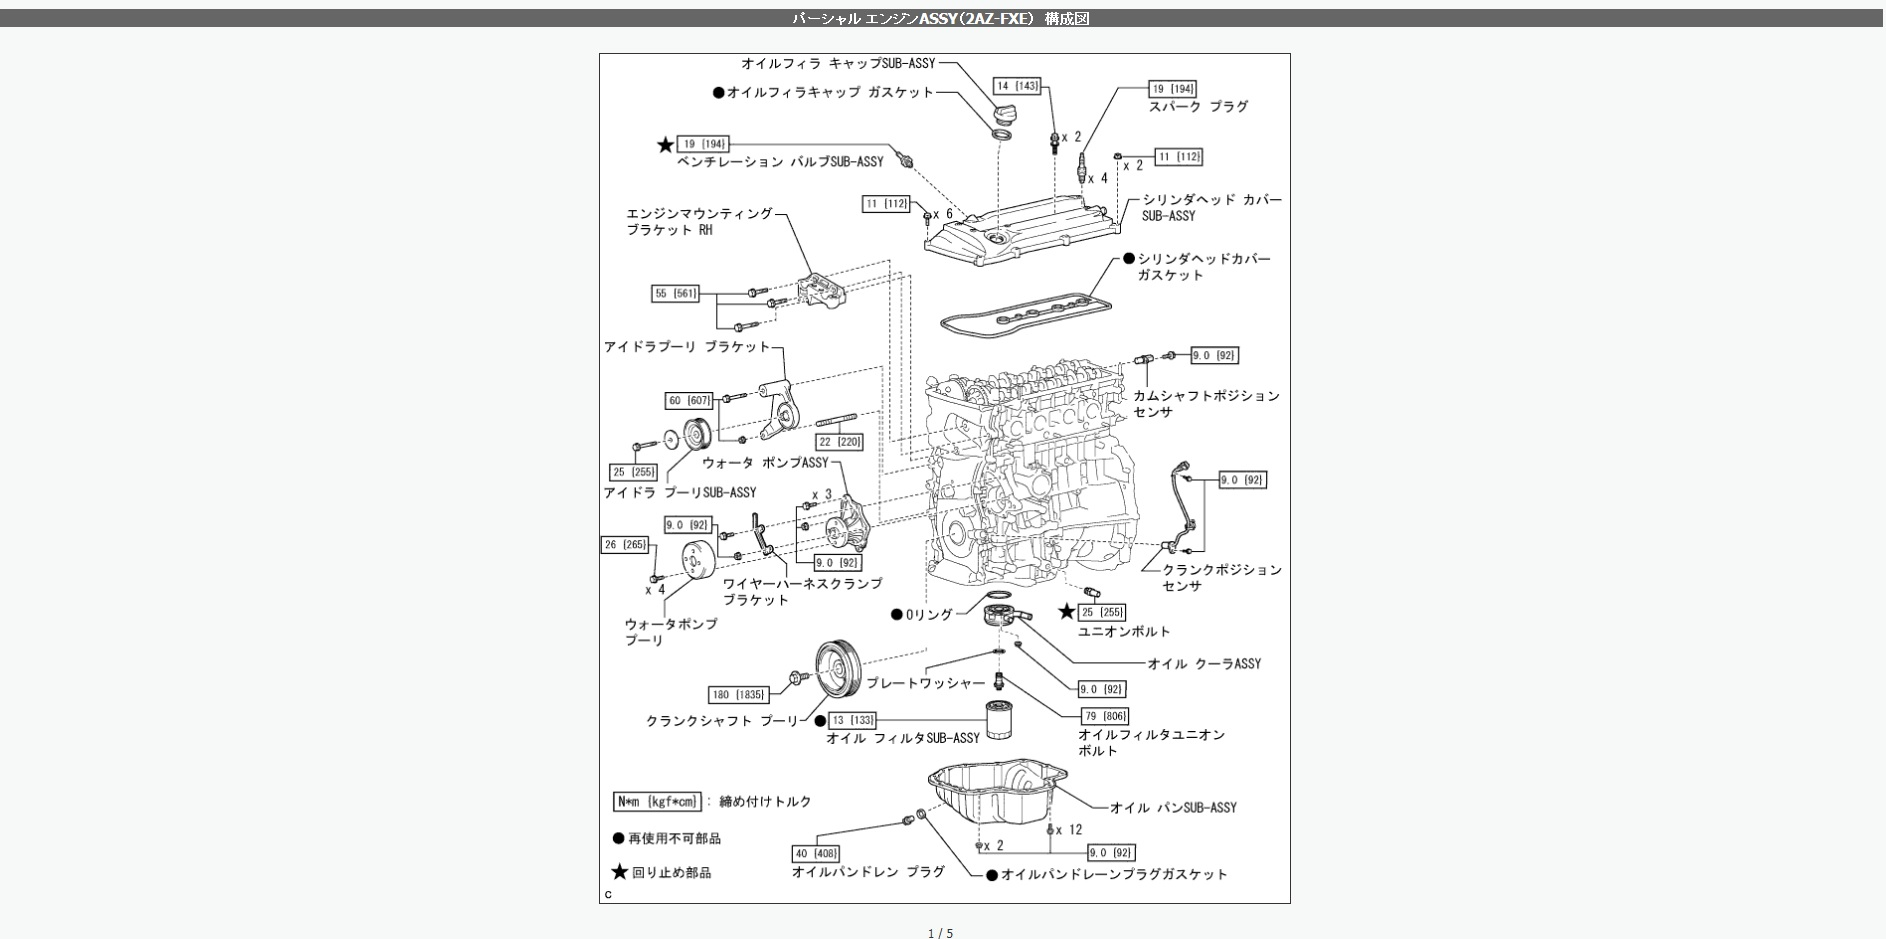 [DIAGRAM] Toyota Vellfire Wiring Diagram FULL Version HD